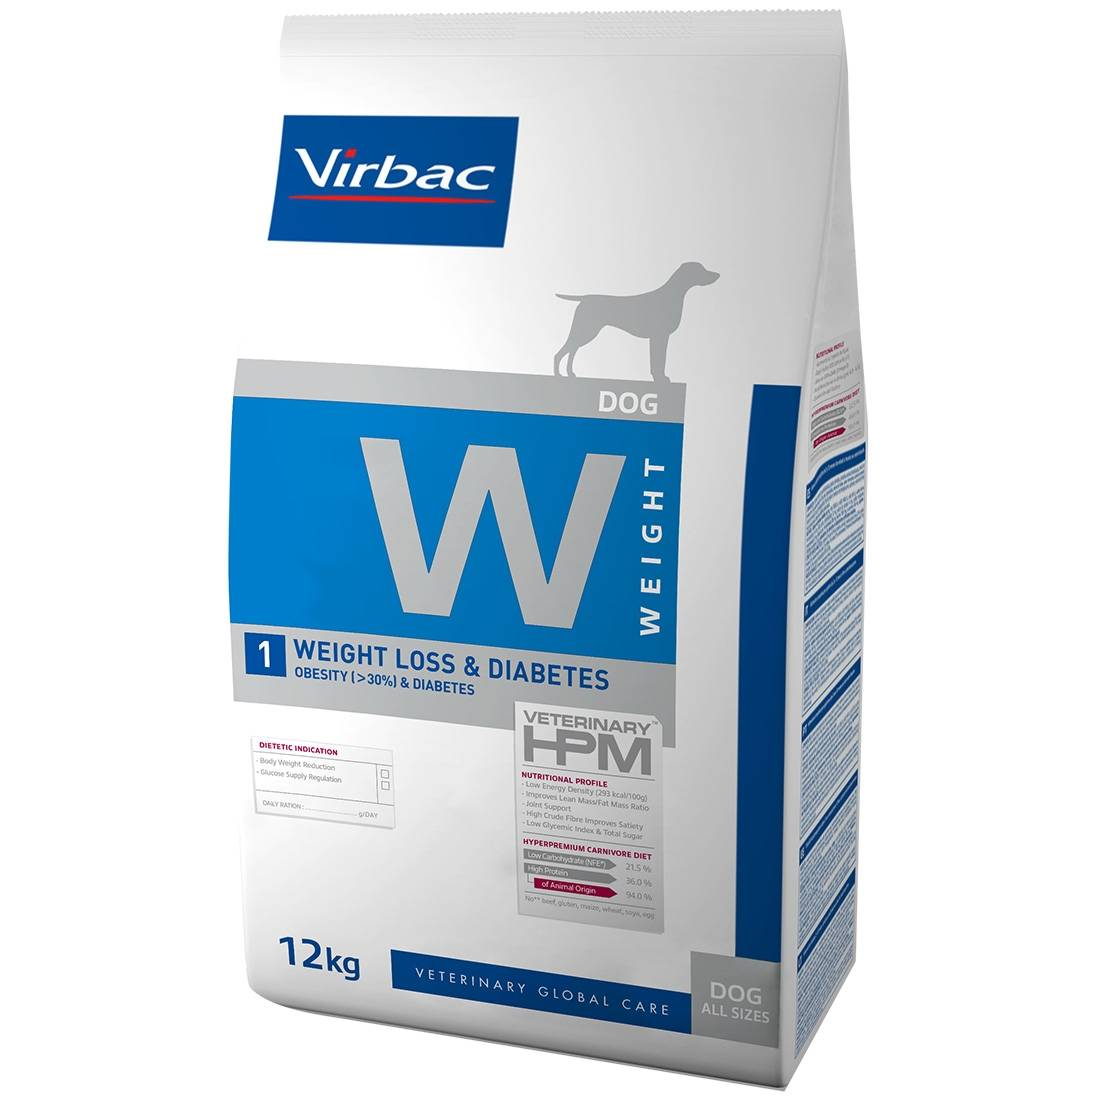 Virbac Veterinary HPM Weight Loss & Diabetes Dog Contenance : 7 kg